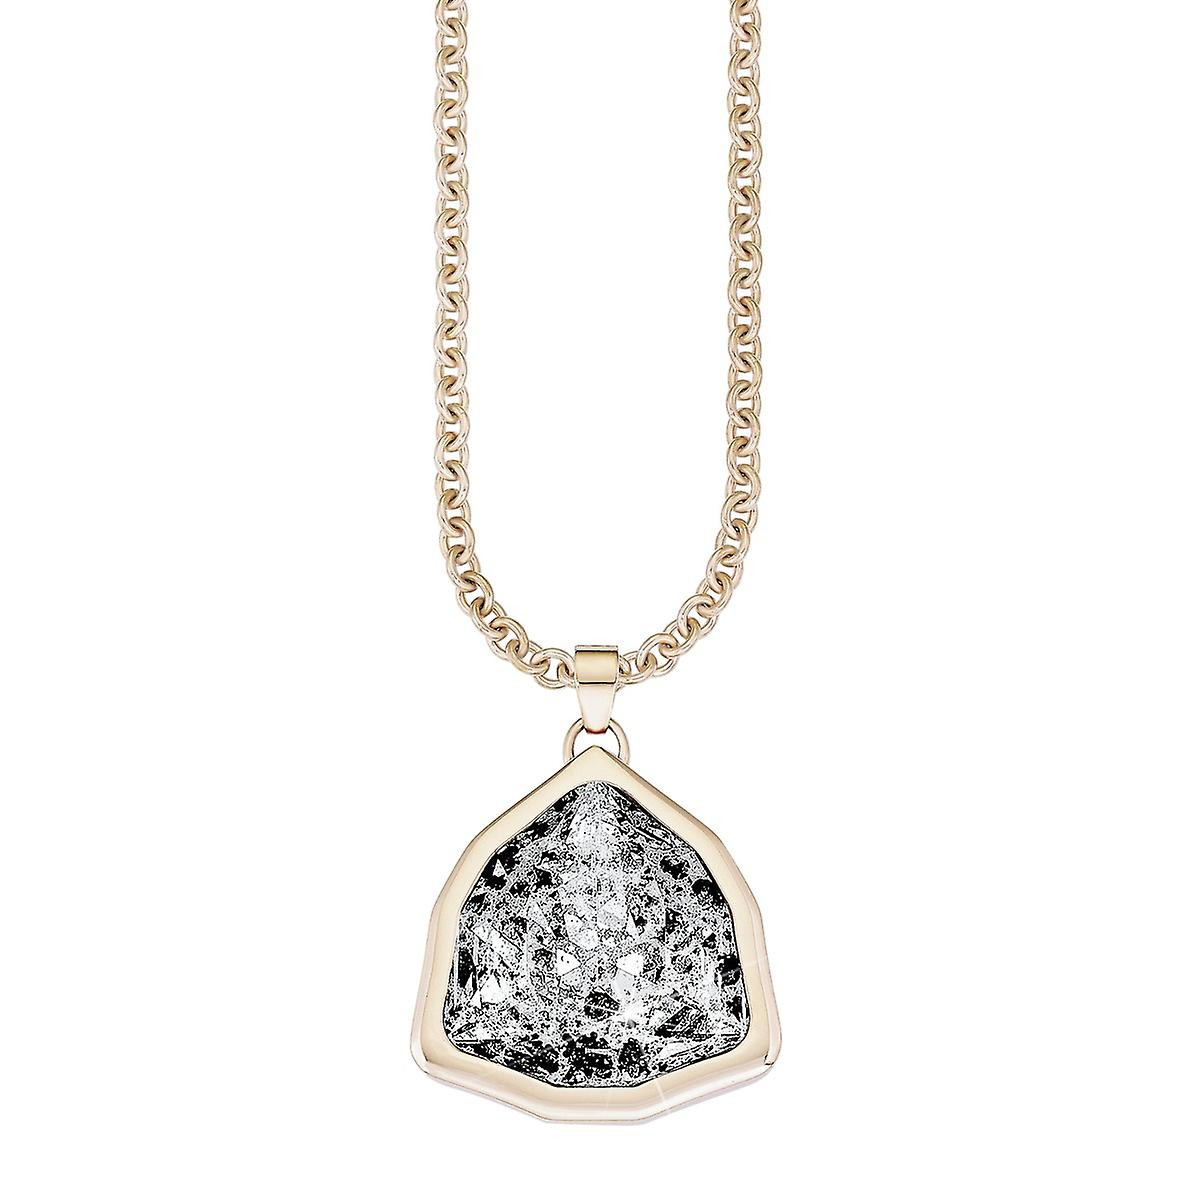 s.Oliver jewel ladies chain necklace silver SO1264/1 - 525701